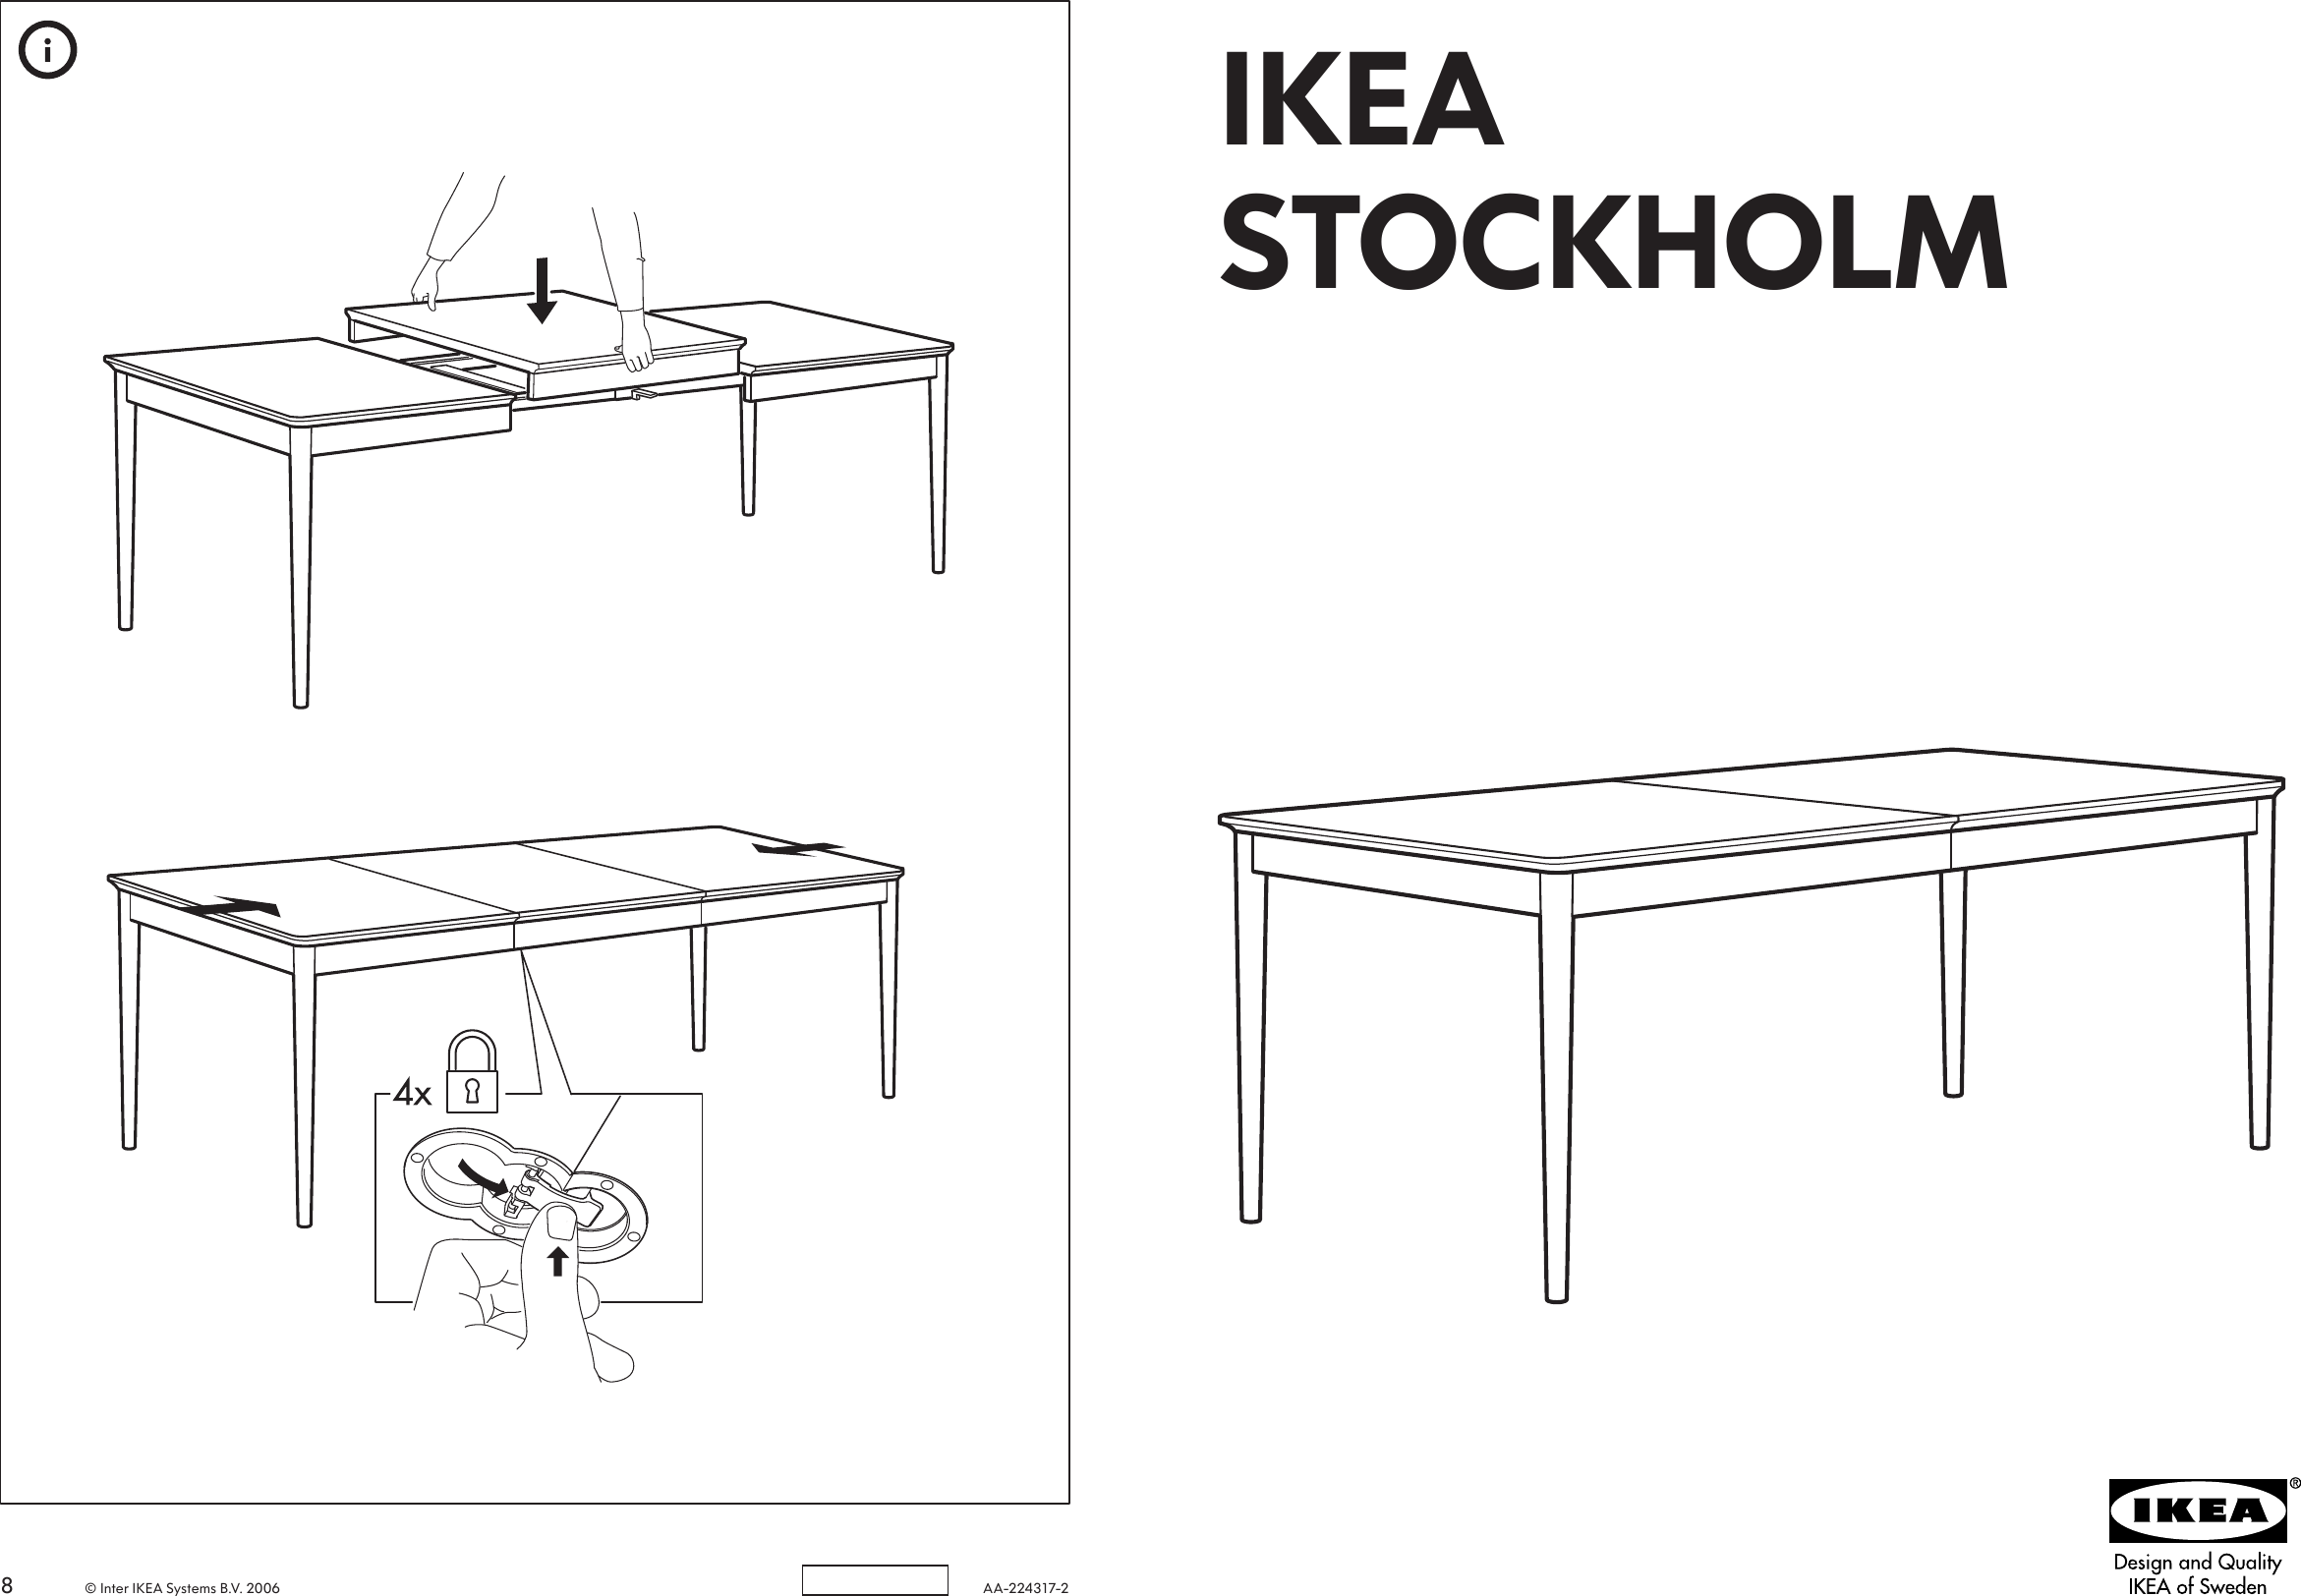 Ikea Stockholm Dining Table 71 93x35 Embly Instruction